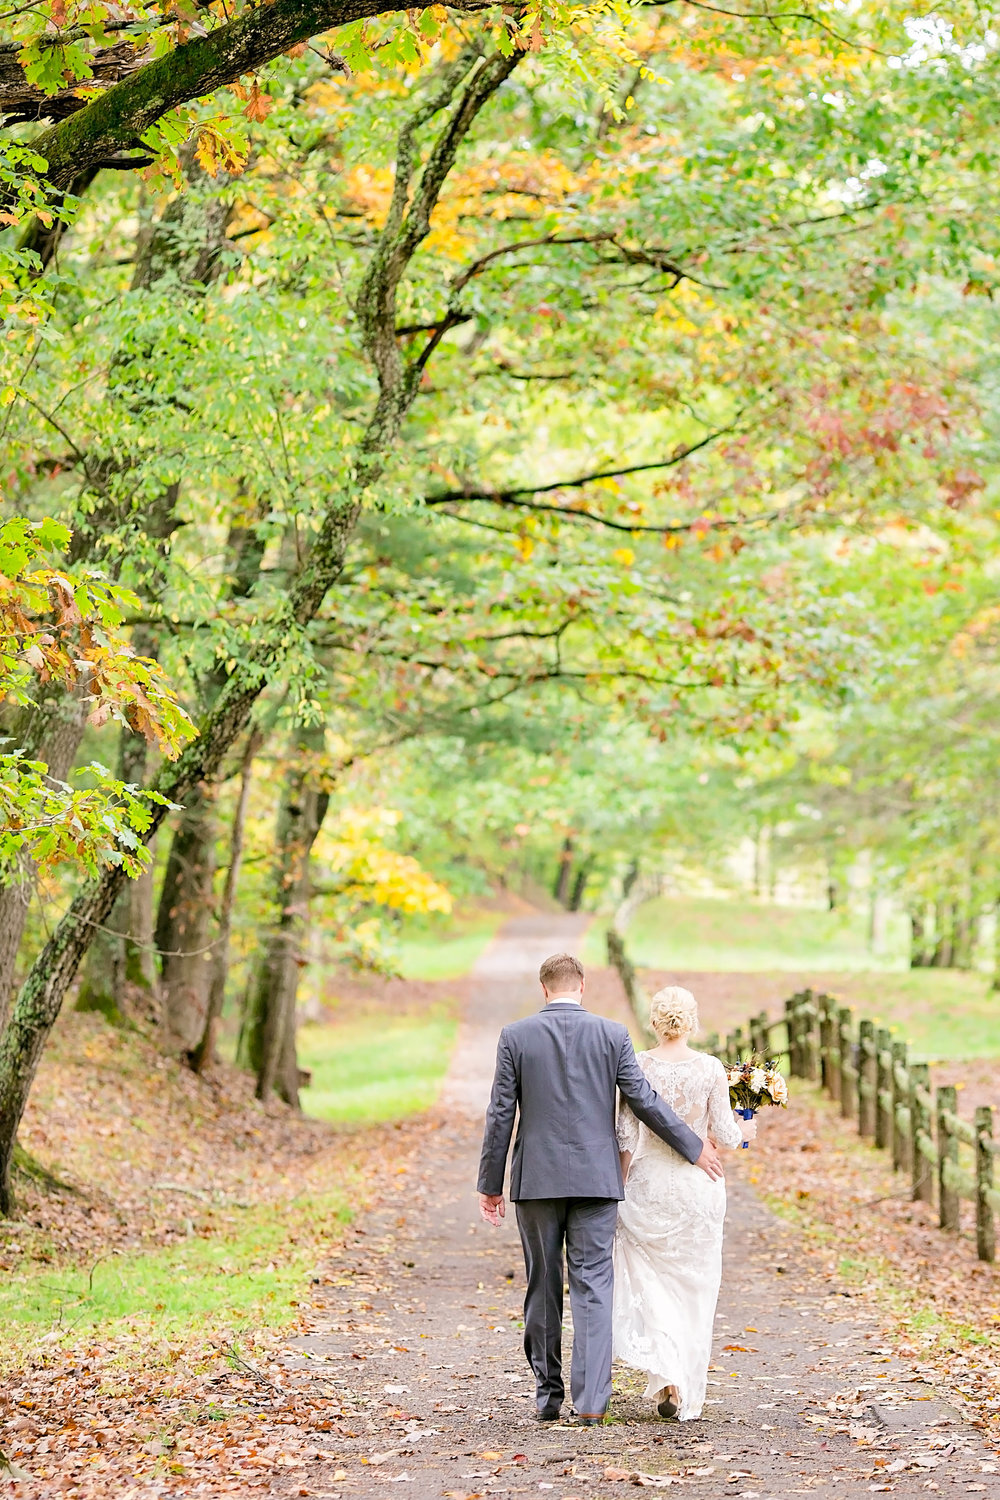 Wedding couple walking on tree-lined path